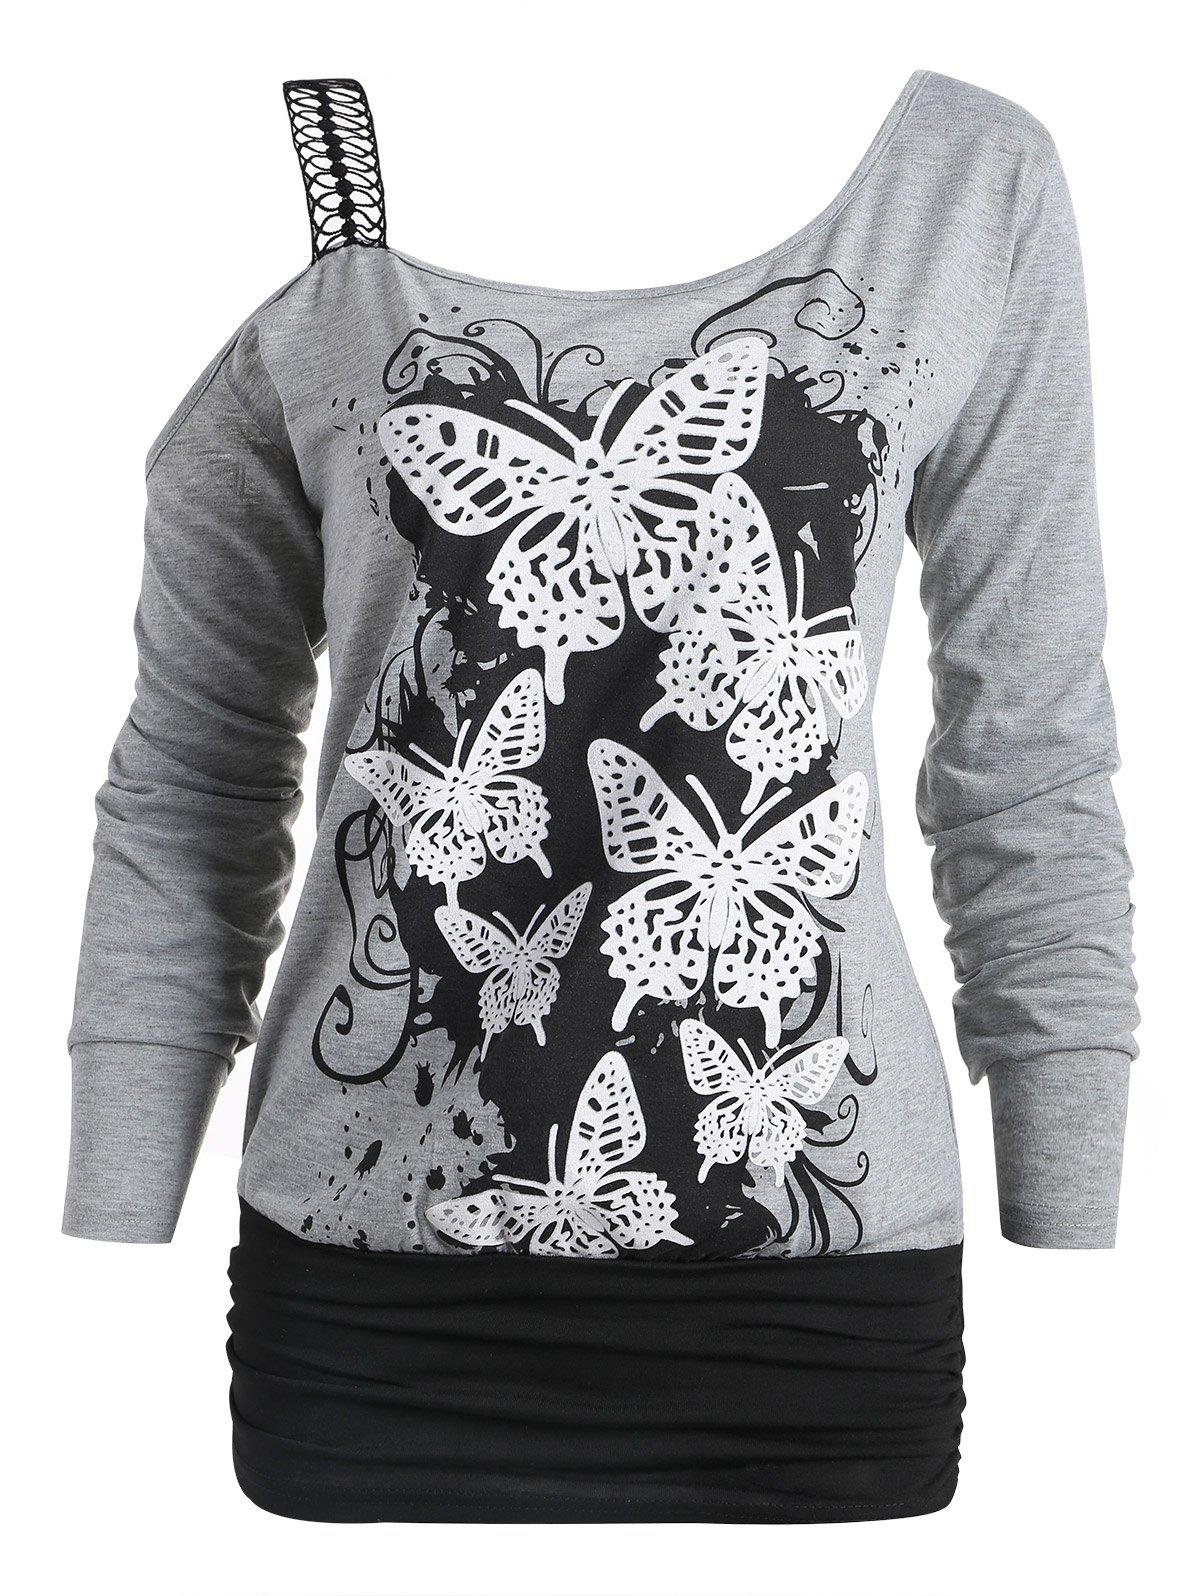 2019 Butterfly Print One Cold Shoulder Long Sleeve T-shirt  090d6a446c3c